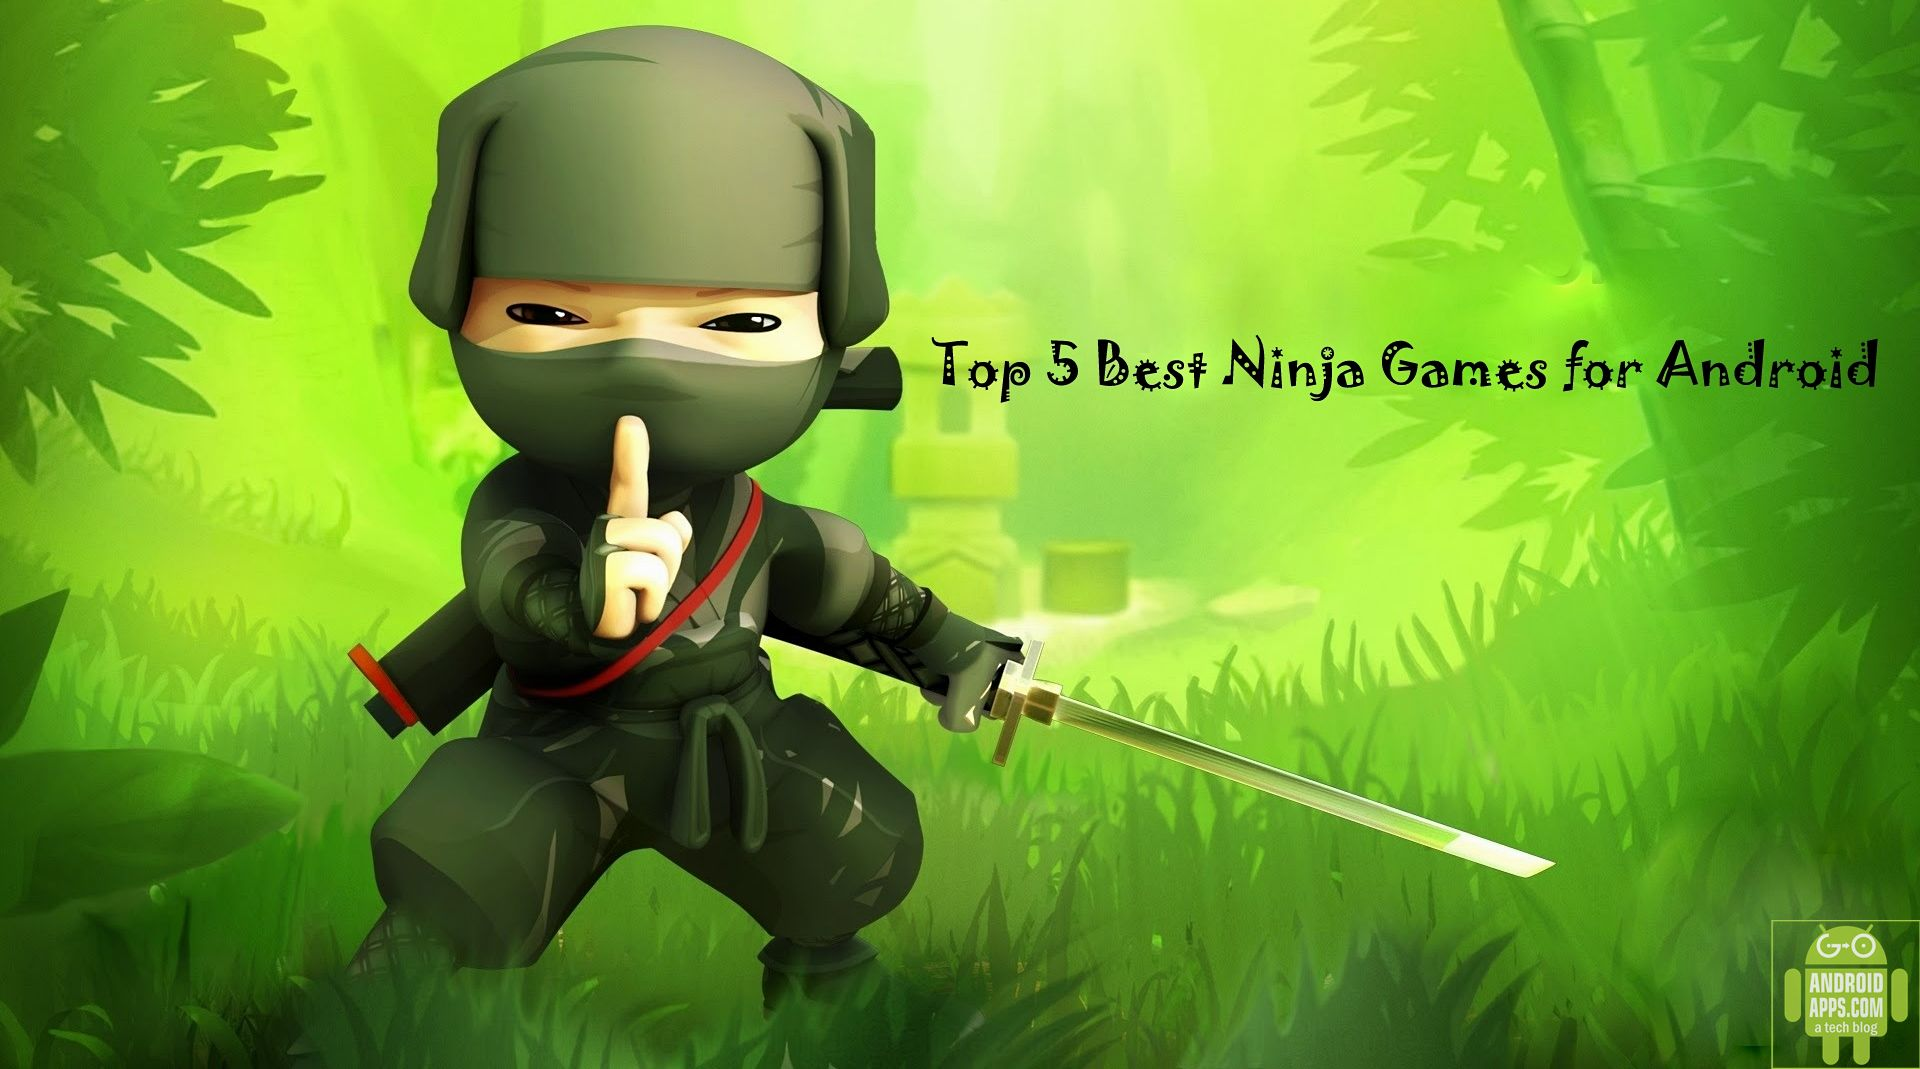 Phone Top 5 Games For Android Phones top 5 best ninja games for android jpg android